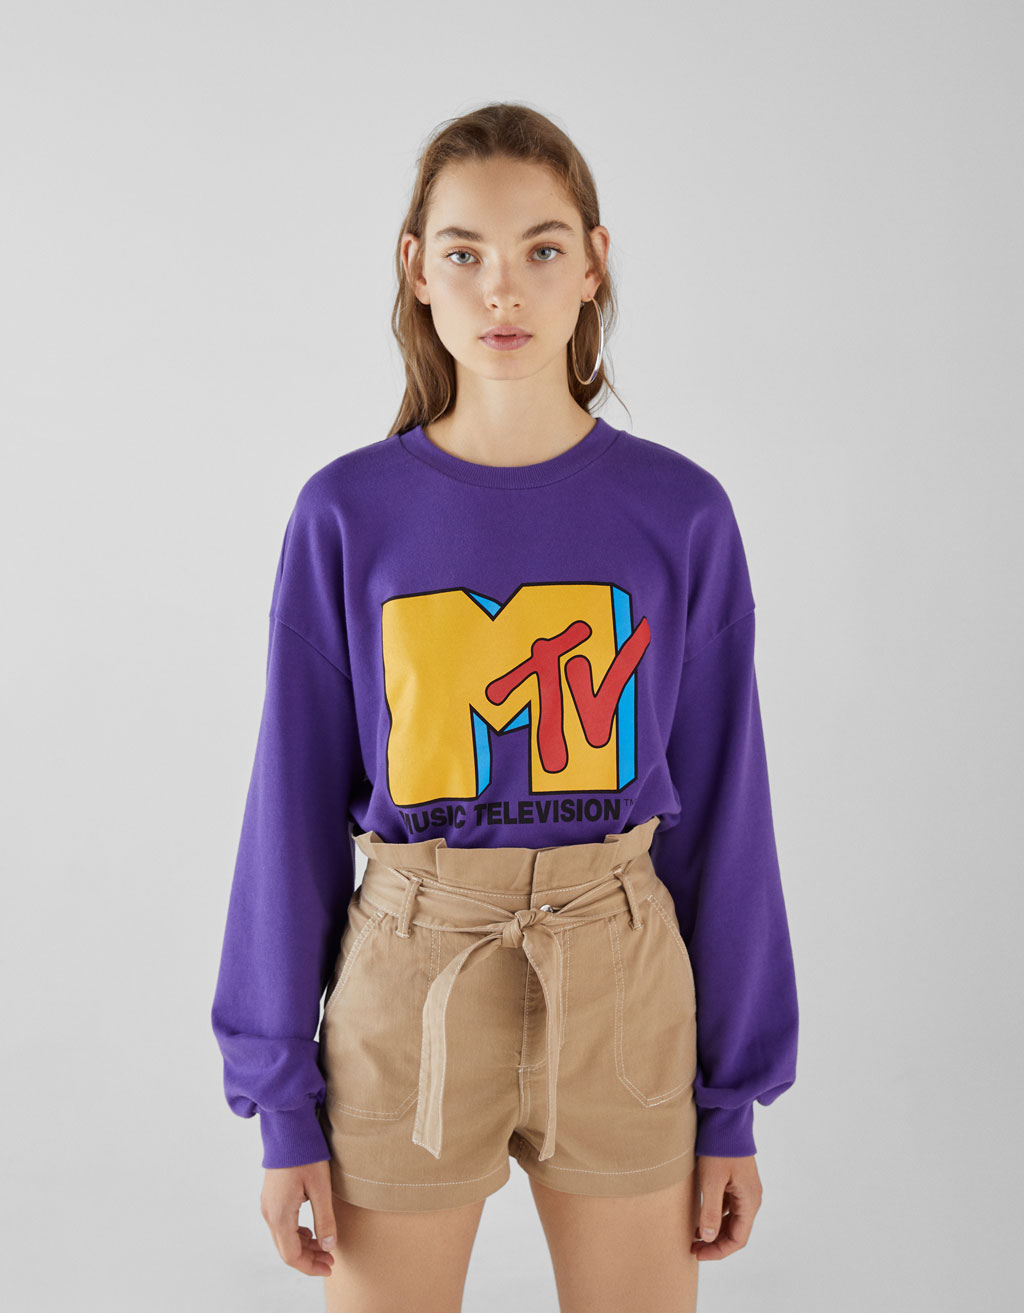 Sweatshirt MTV music television